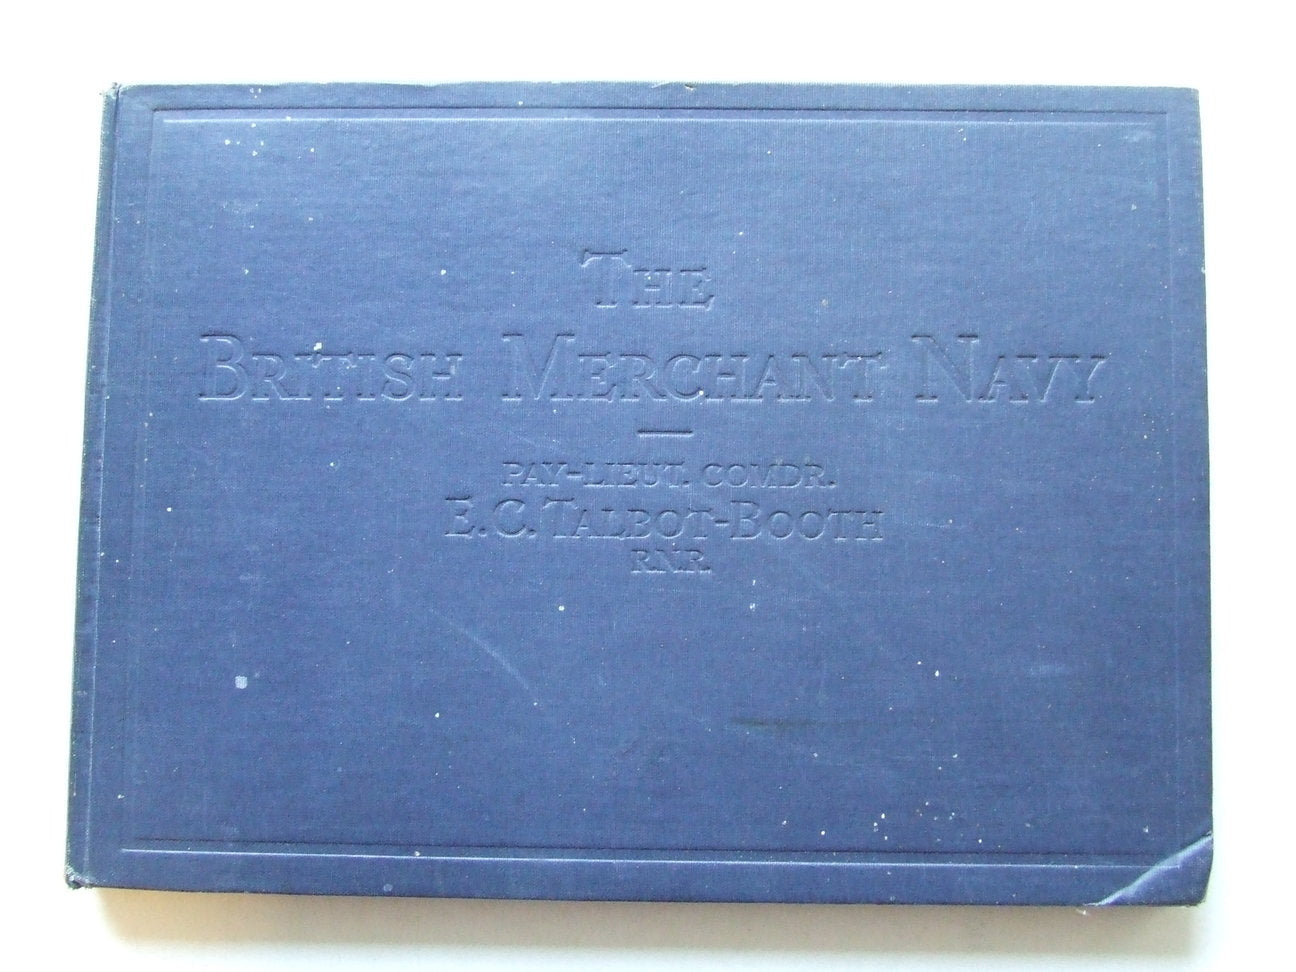 The British Merchant Navy 1937-8